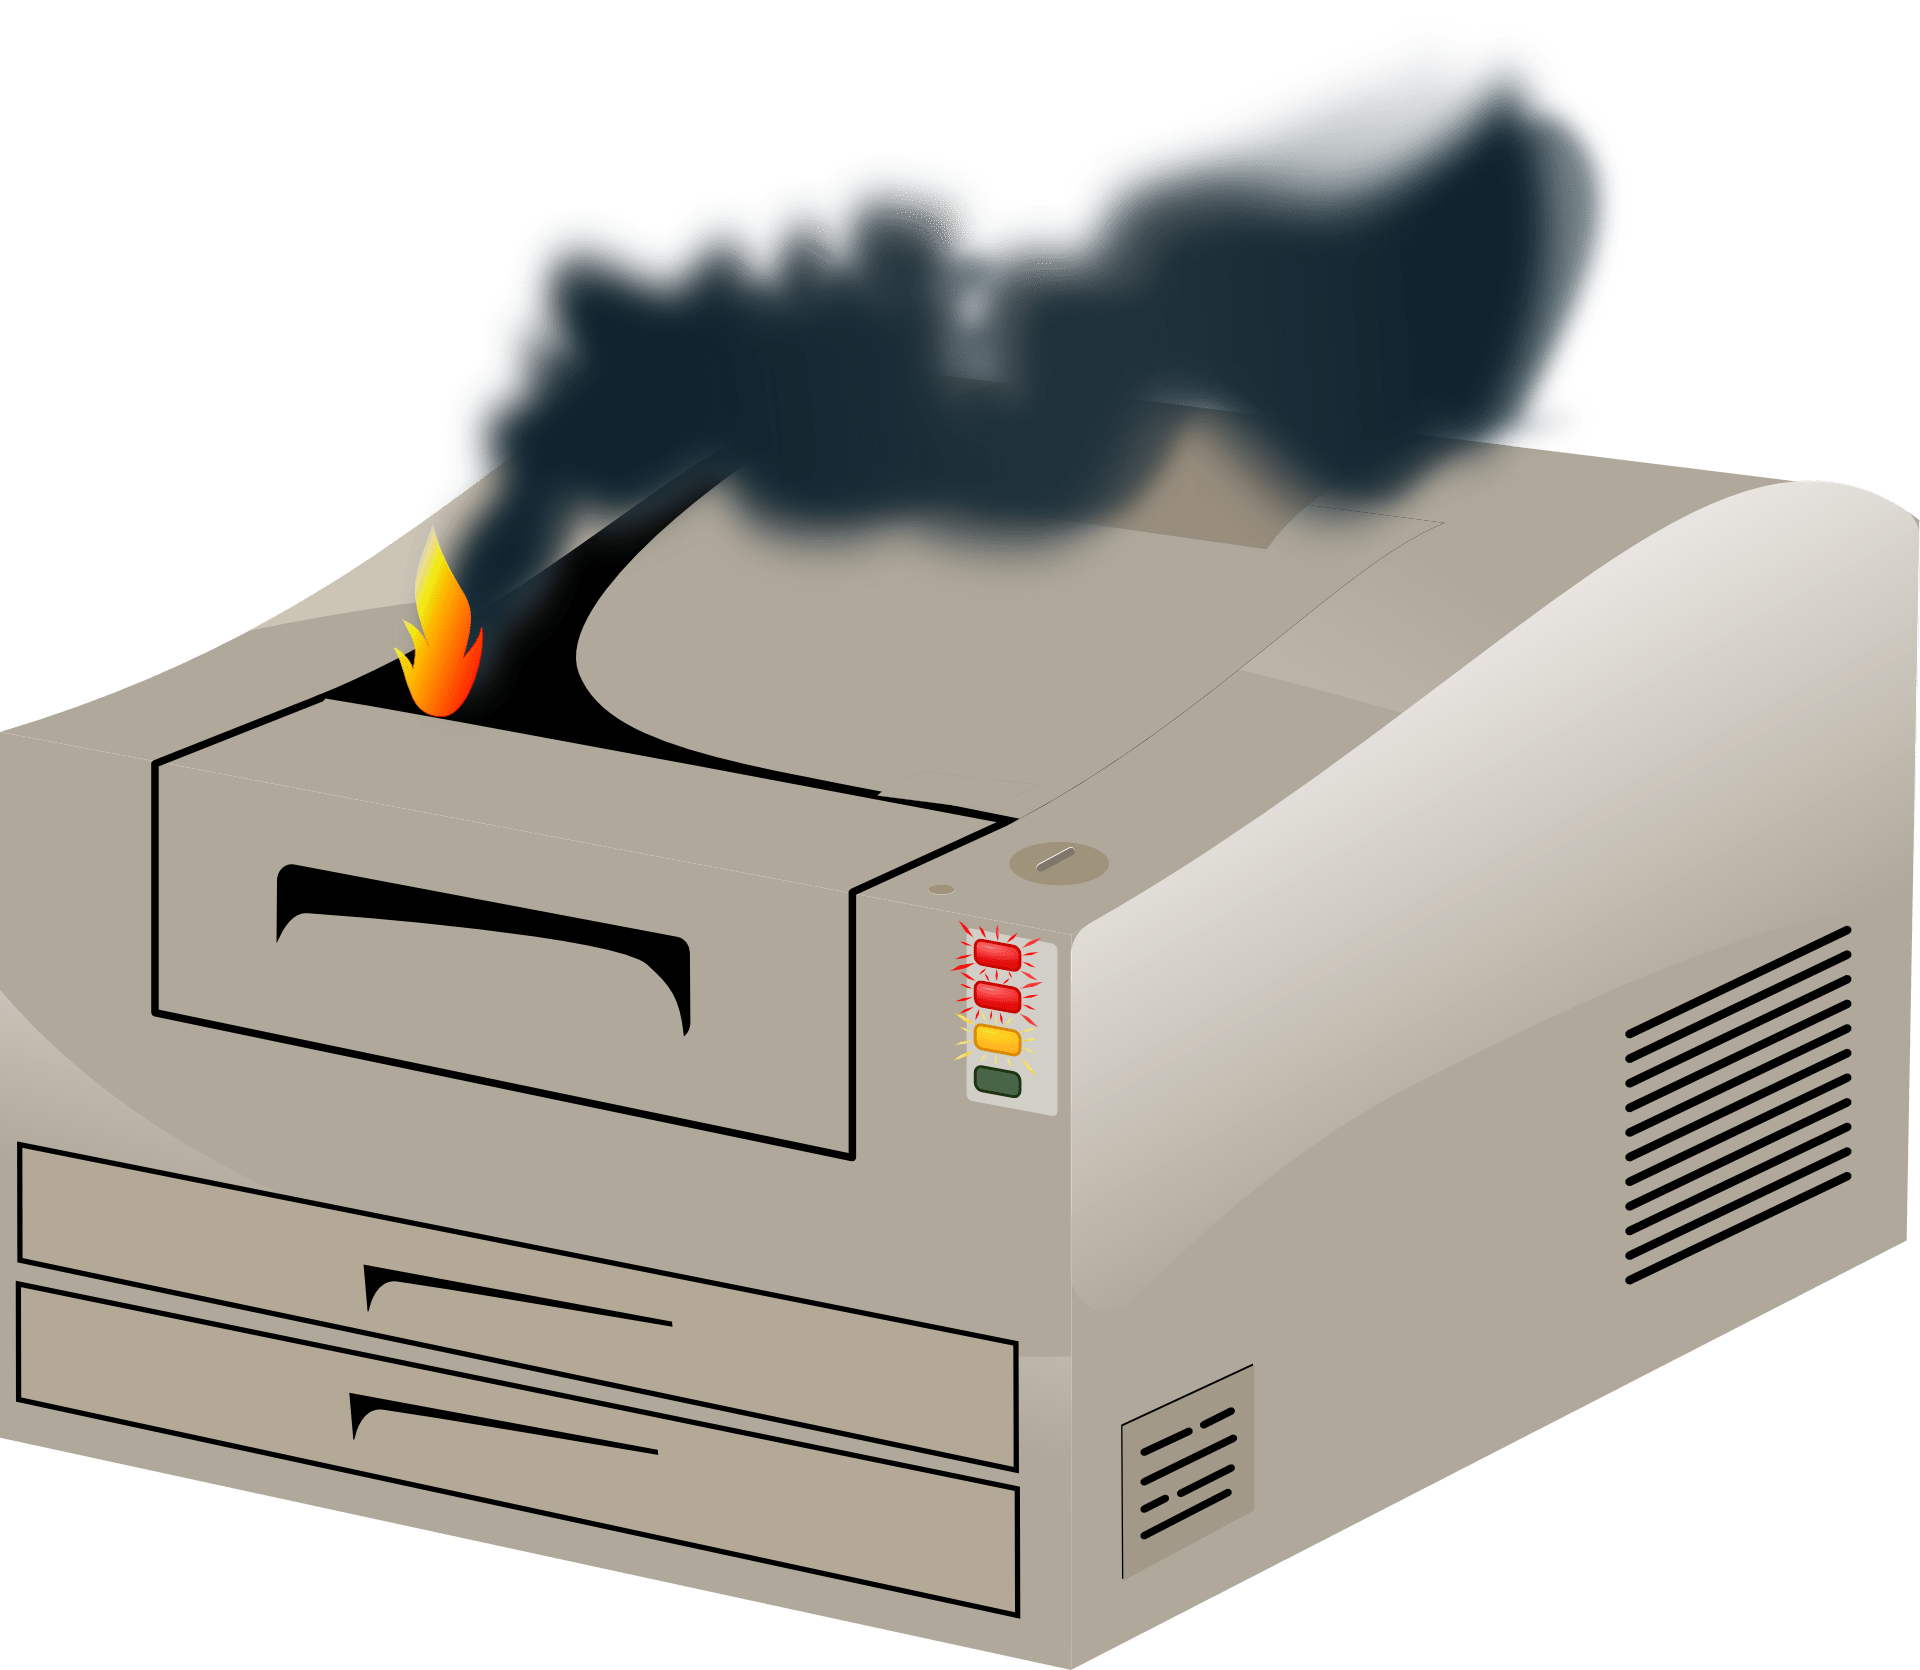 The most common printer issues